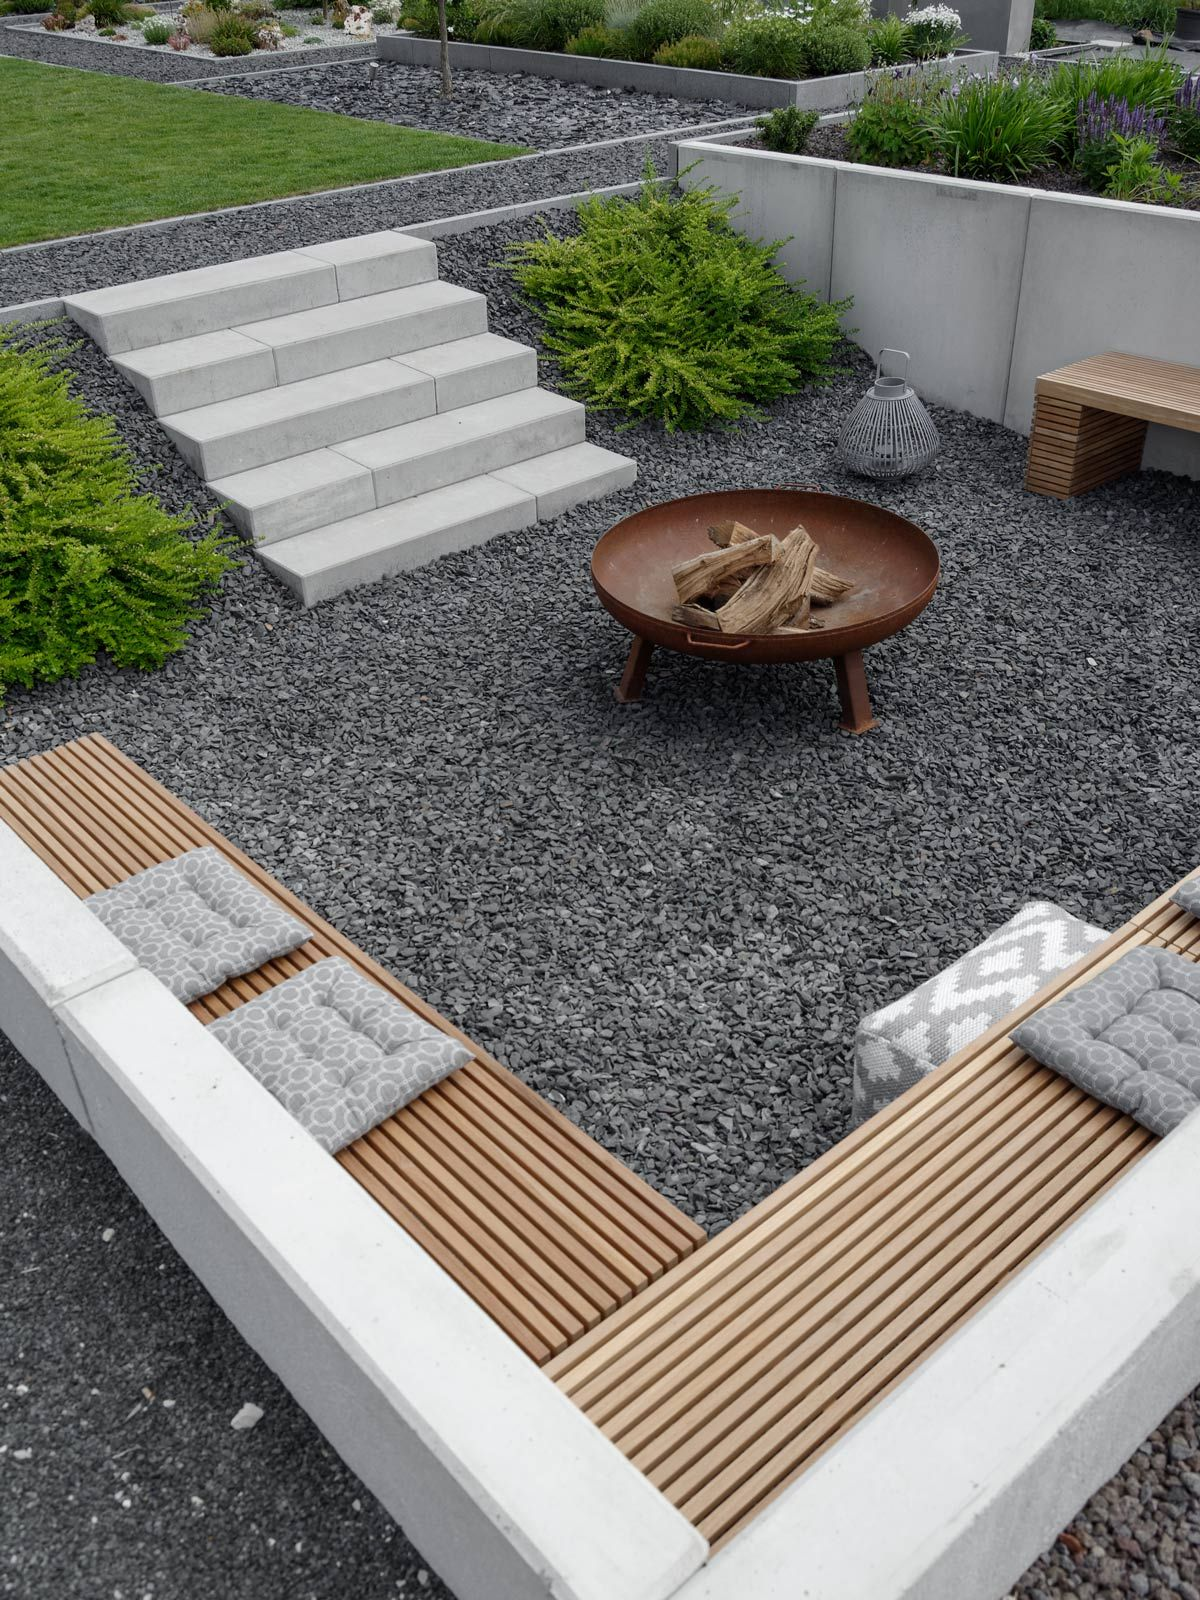 Feuerstelle Für Garten Garten Deck And Patio Pinterest Garden Garden Landscaping